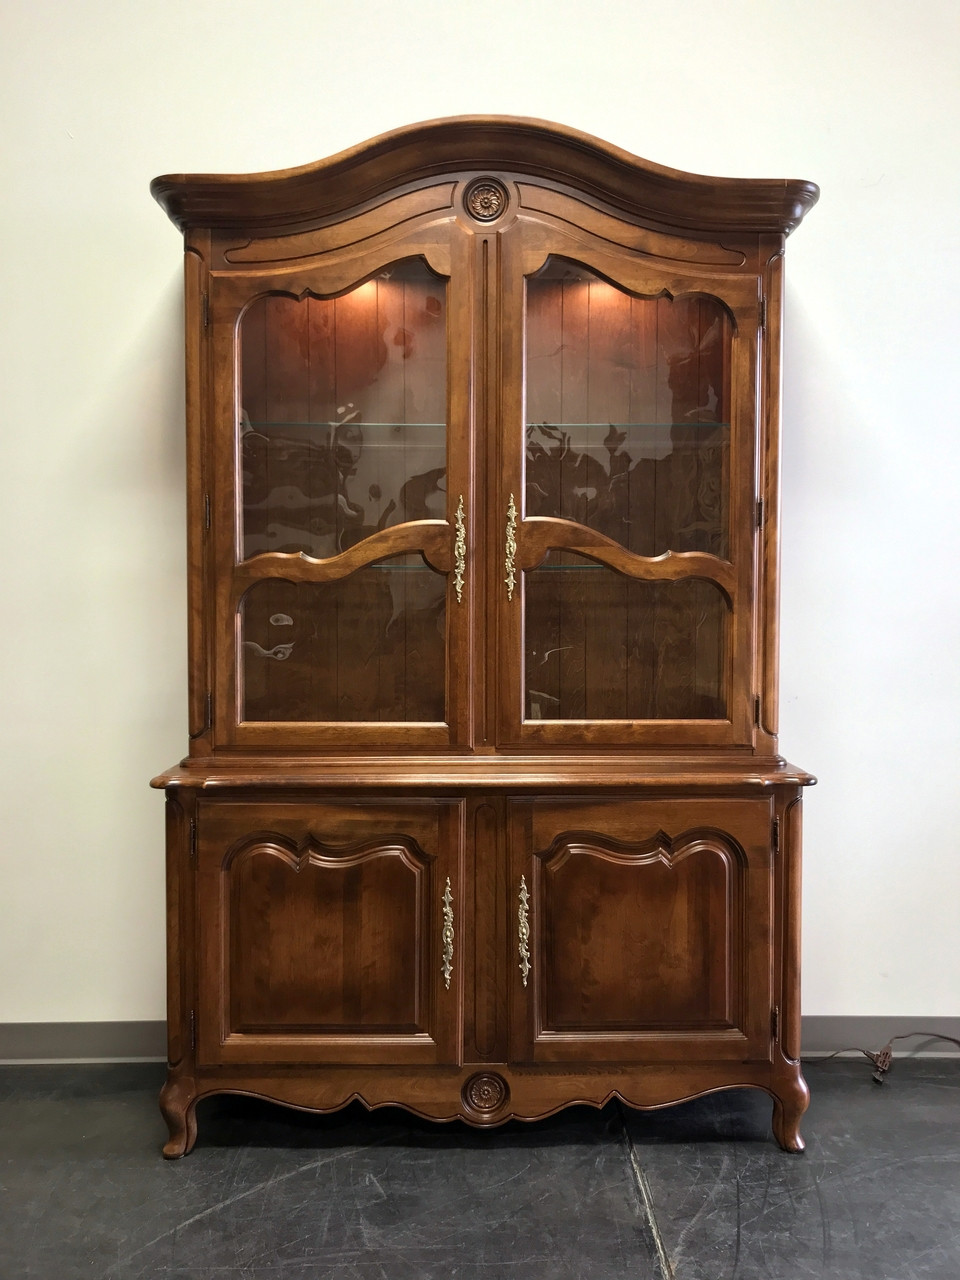 SOLD OUT   ETHAN ALLEN French Country Louis XV Style Fruitwood China Cabinet